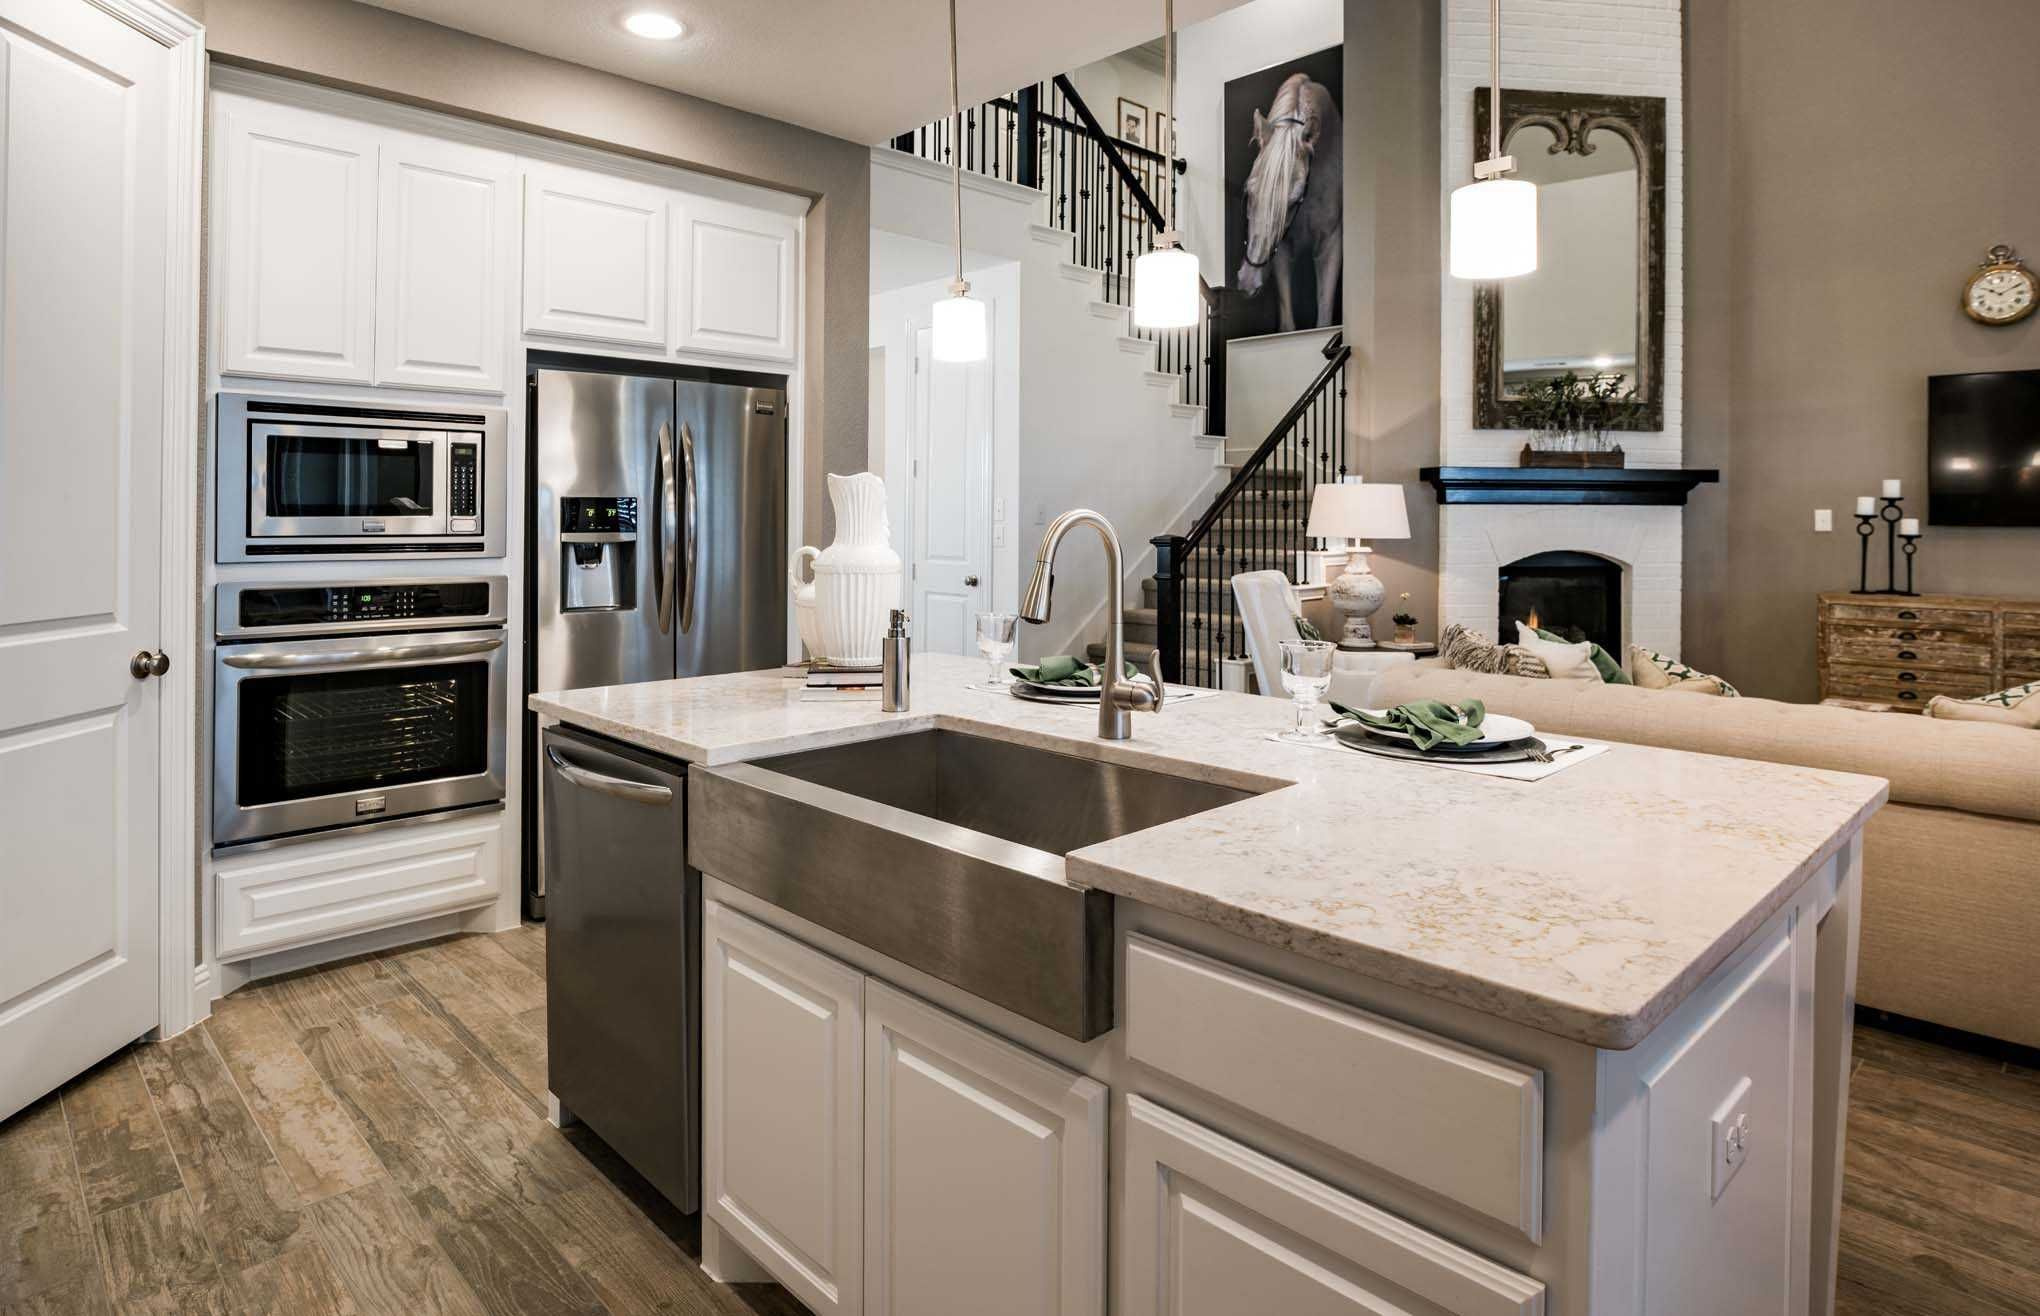 Highland Homes Plan 208 Model Home In Dallas Fort Worth Texas Star Trail 55s 65s Community Kitchen Kitchendesign New Homes